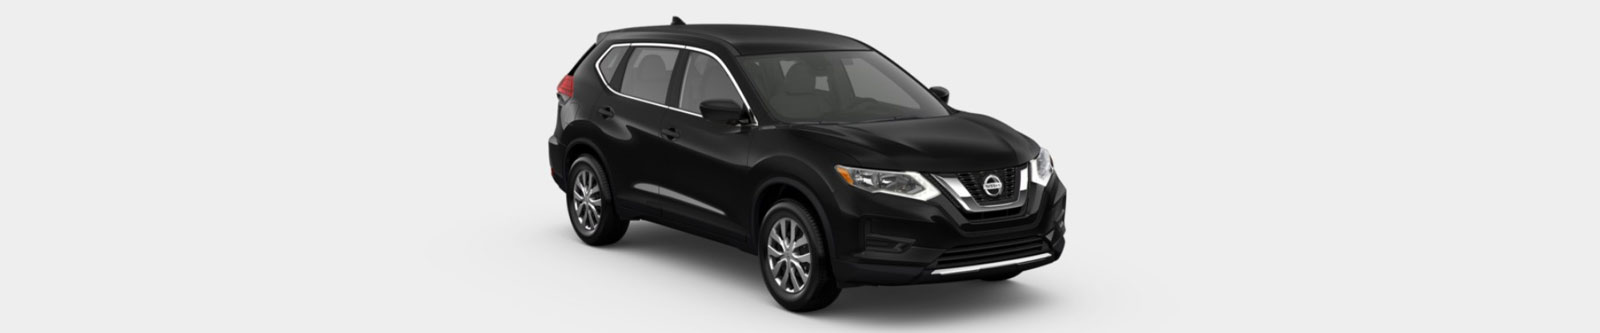 Drive the 2020 Nissan Rogue in Pascagoula, MS, at Estabrook Nissan